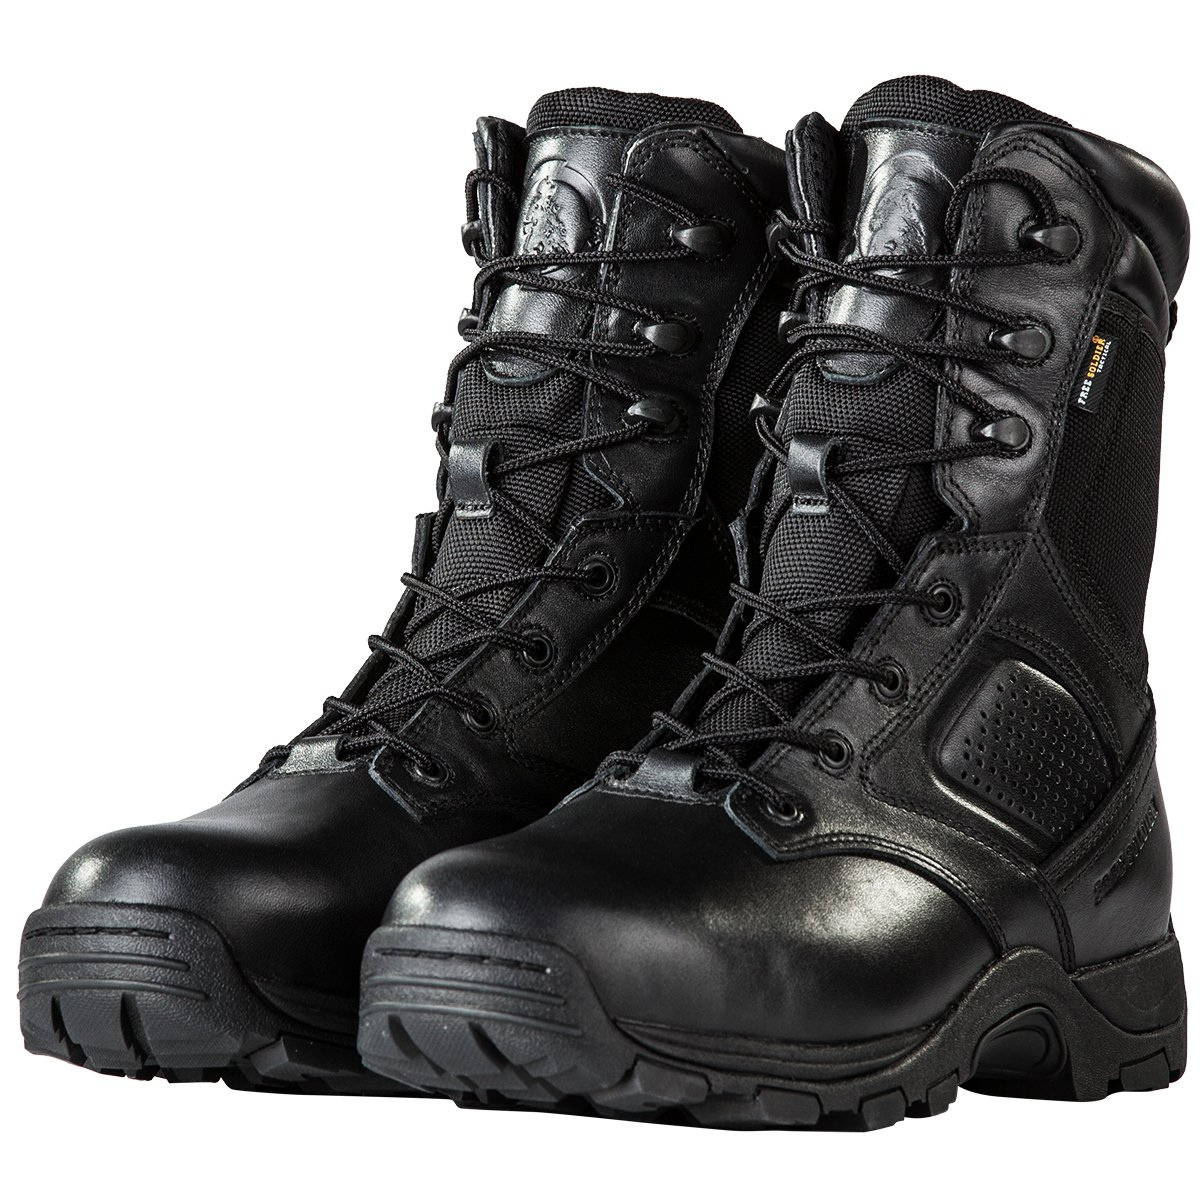 Steel Toe Tactical Boots - Free SODLIER Waterproof Shoes Penetration Resistant Composite Toe Combat Boot